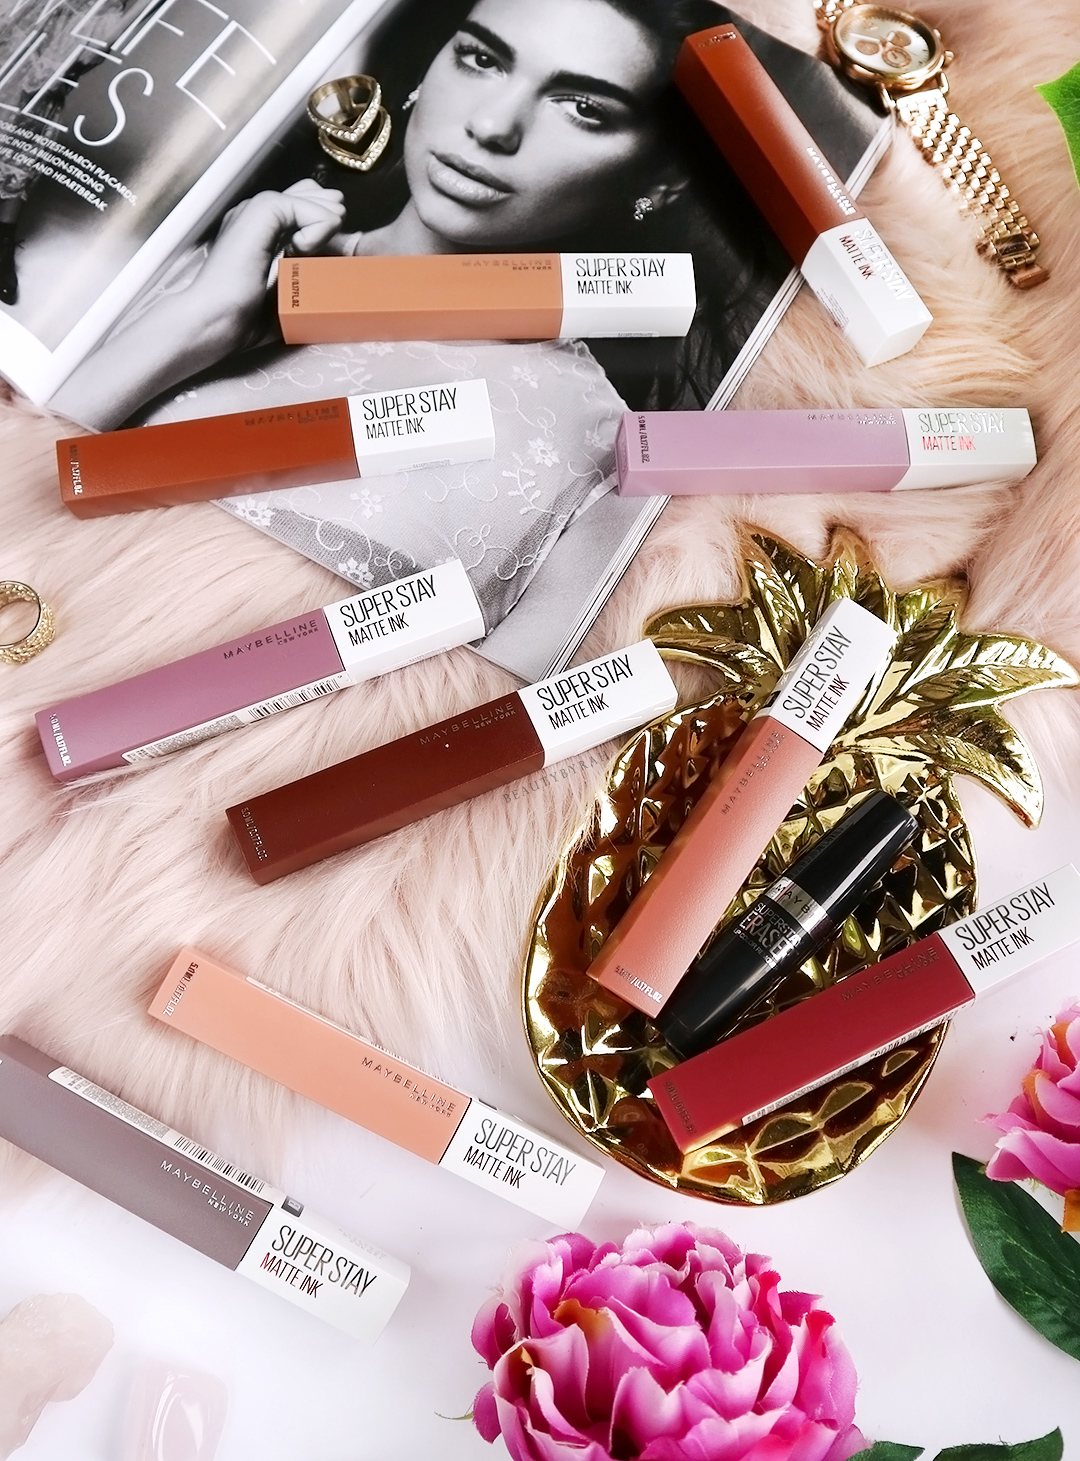 Maybelline Superstay Matte Ink Unnudes Collection Review and Swatches